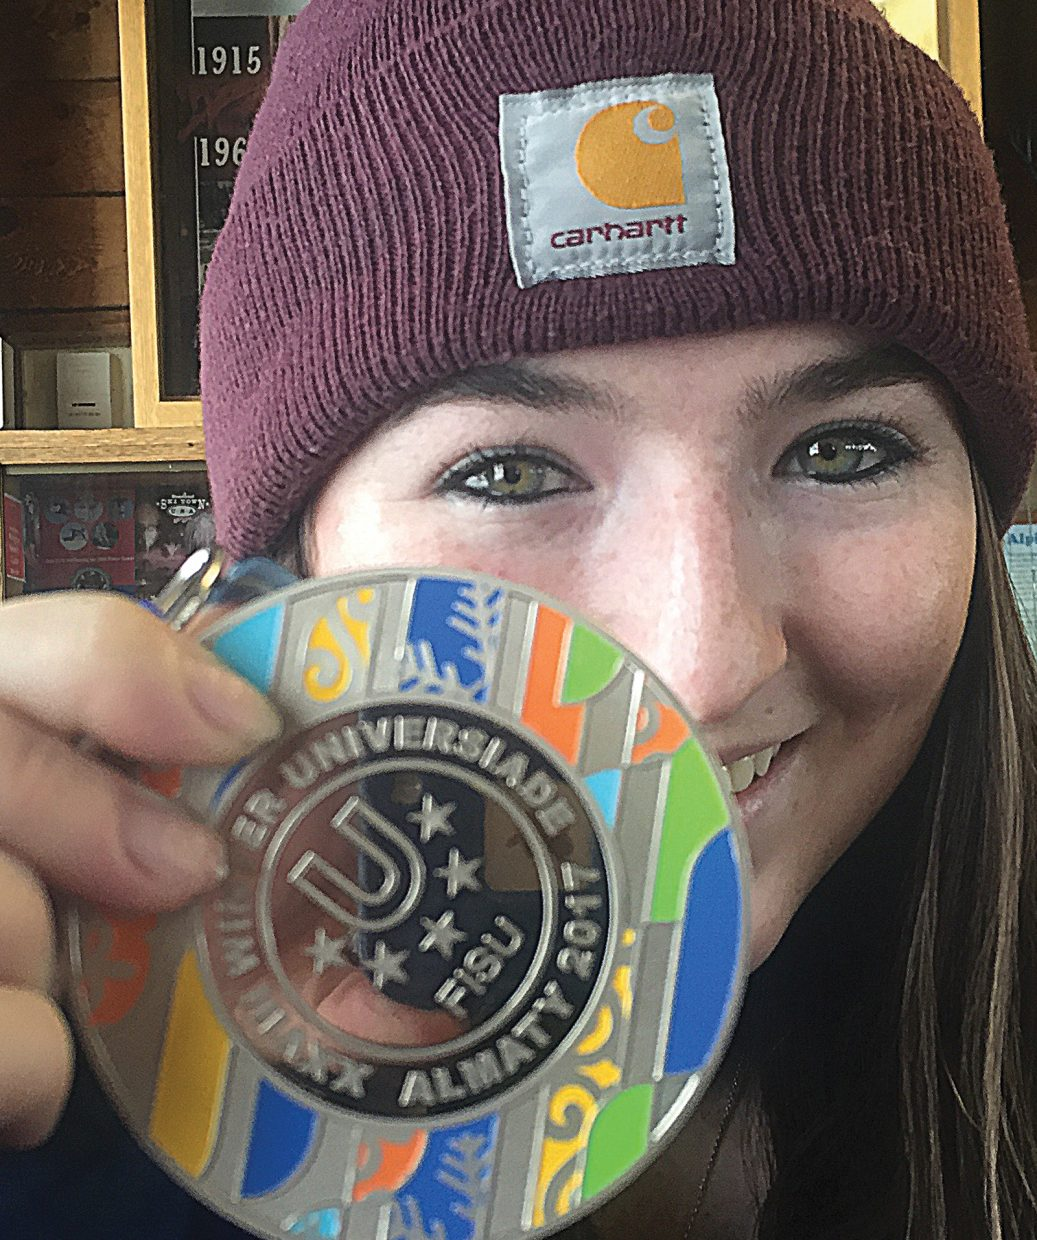 Maggie Rose Carrigan shows off the medal she won at the Winter Universiade 2017 in Almaty, Kazakhstan, last week. Carrigan is currently leading the NorAm women's Alpine snowboarding standings and is hoping to have a shot at the Olympics Games someday — this despite being diagnosed with adolescent idiopathic scoliosis when she was 10.